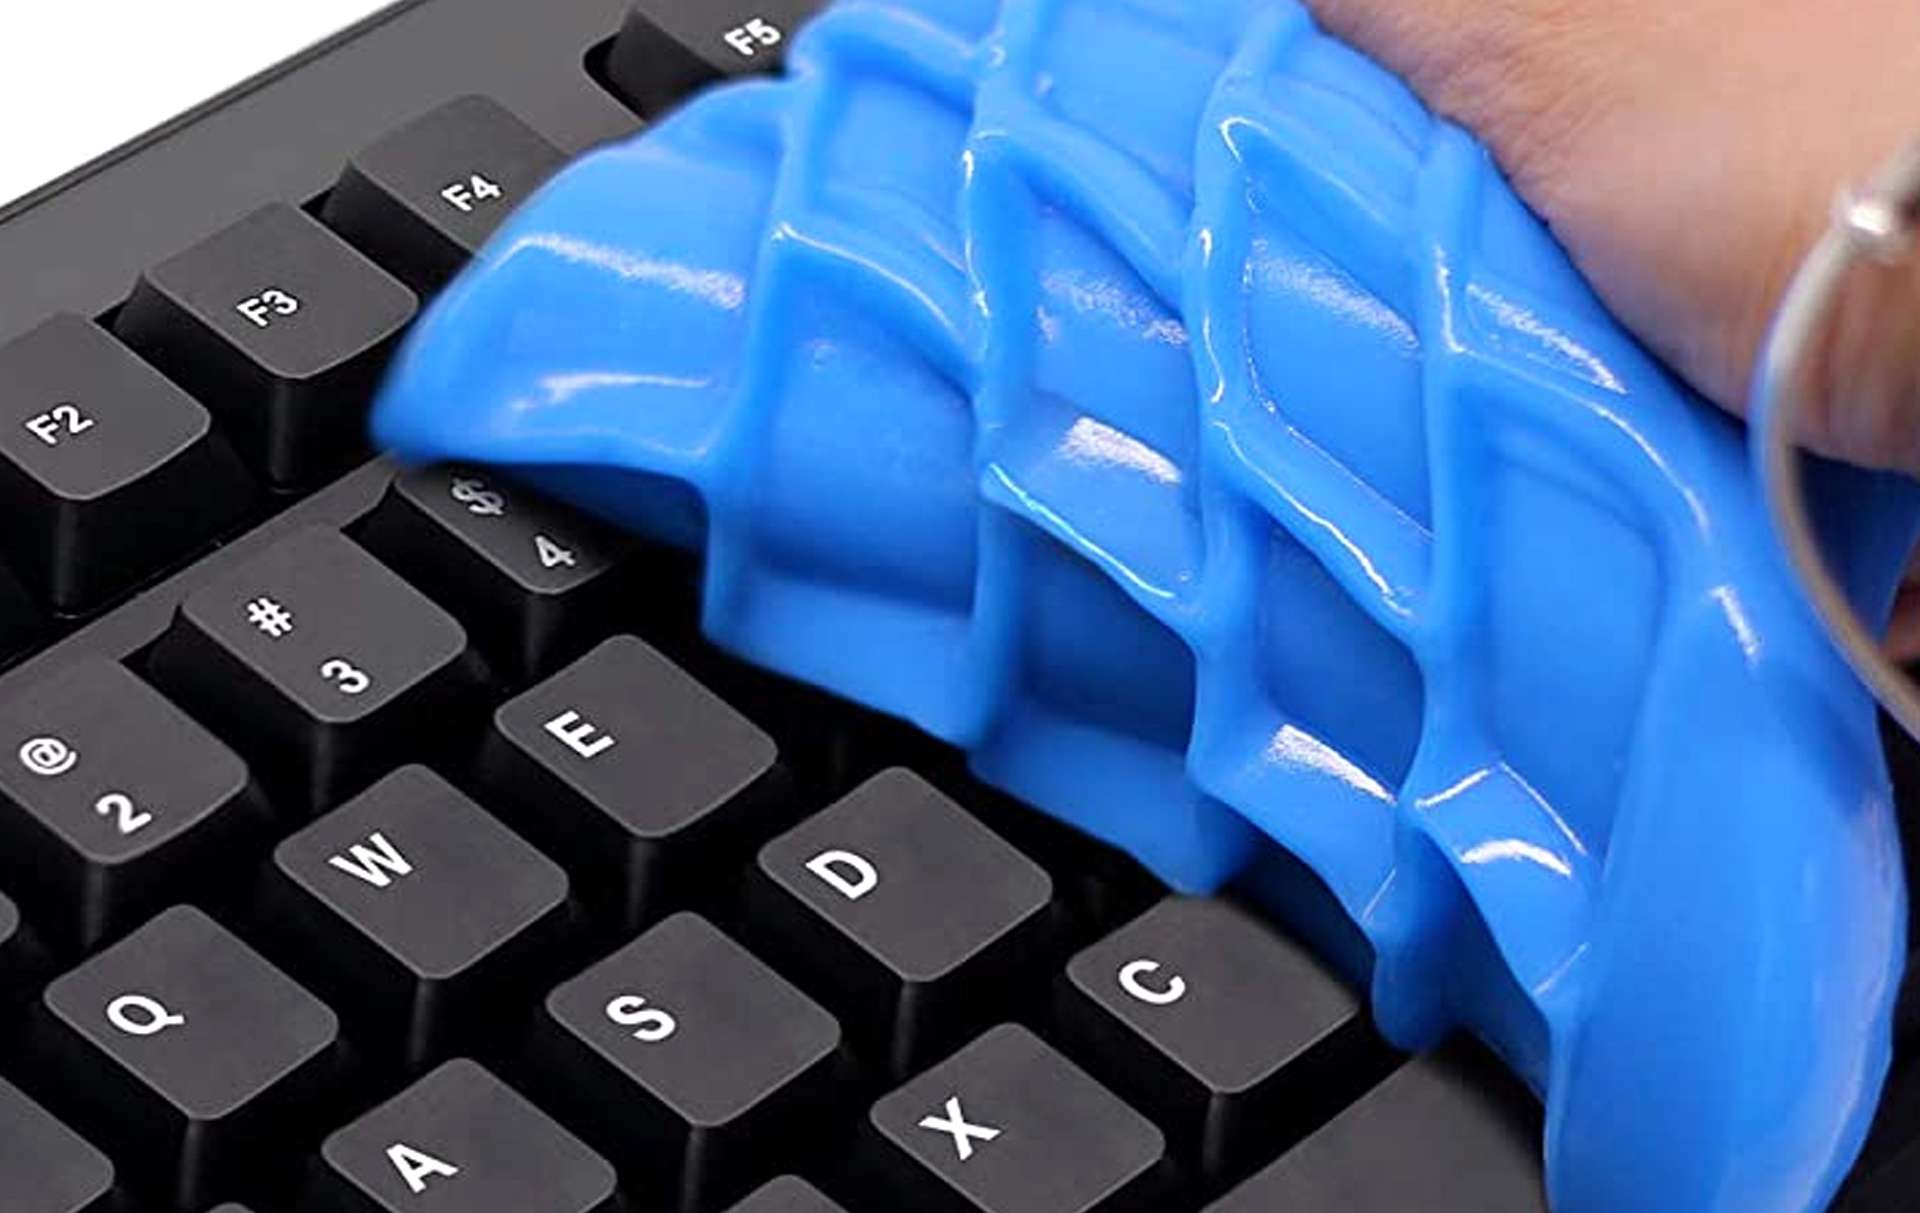 Blue keyboard cleaning gel being removed from a black mechanical keyboard.